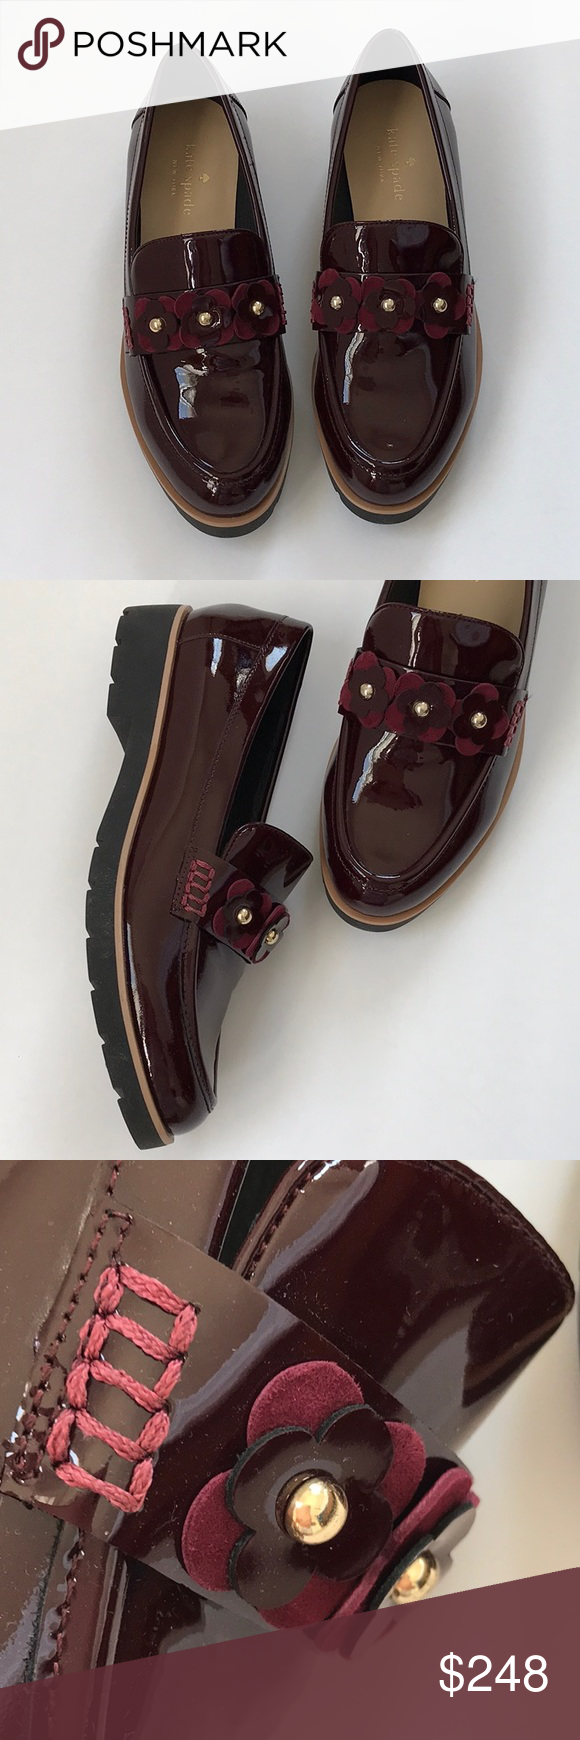 3732fe86a2c1 💼Kate Spade Karisa Bordeaux Loafer nib sz 7.5 Patent leather. Slip on.  Black